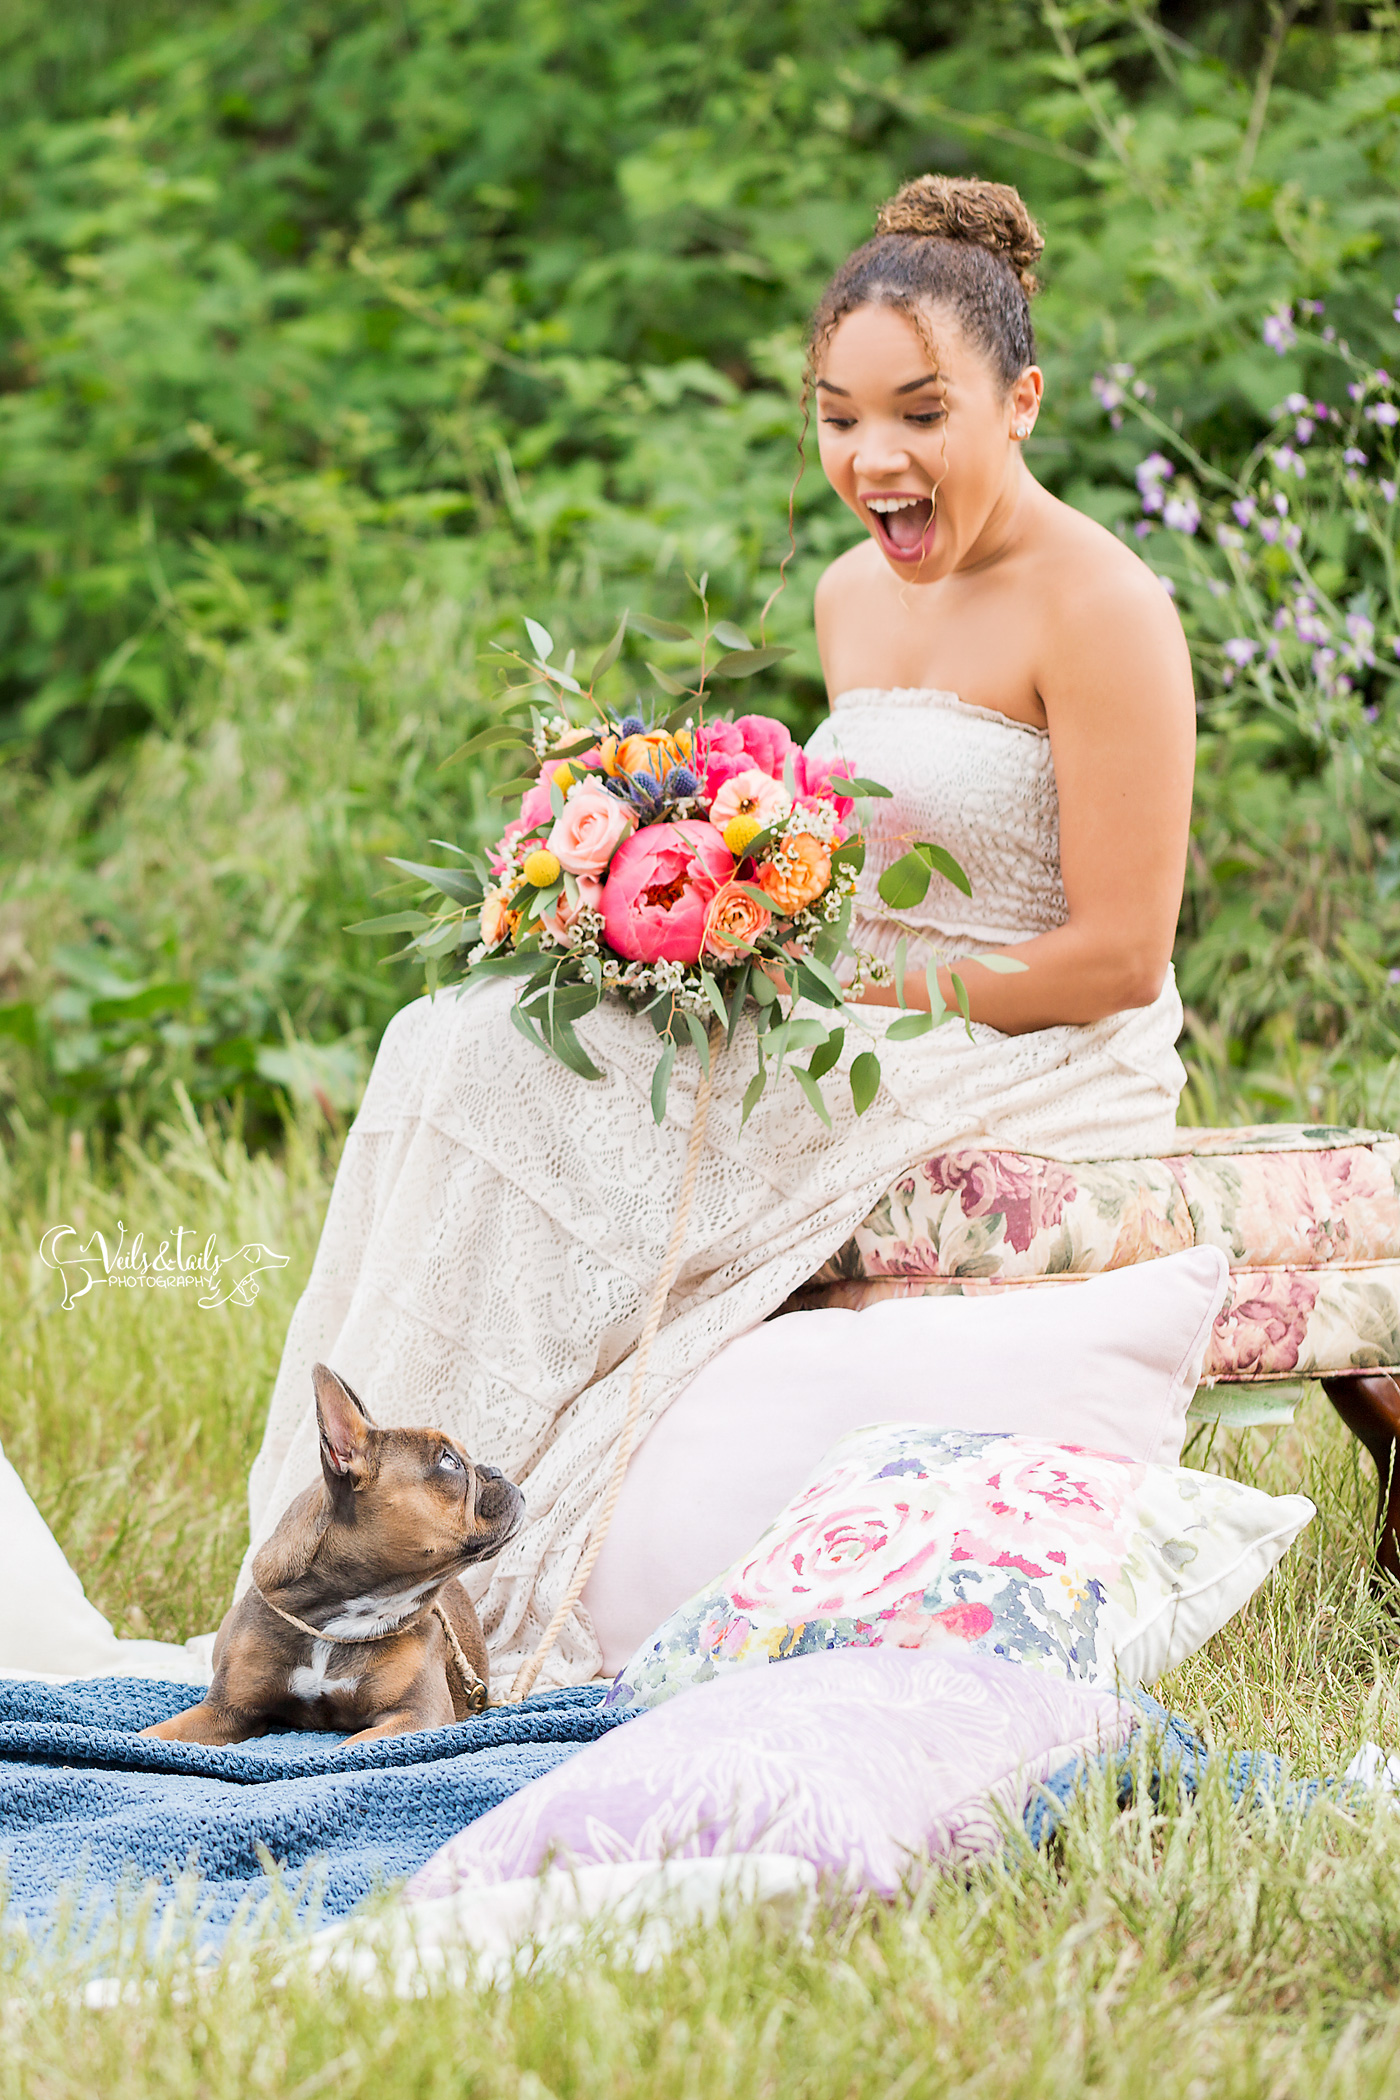 Bride with Dog in wedding